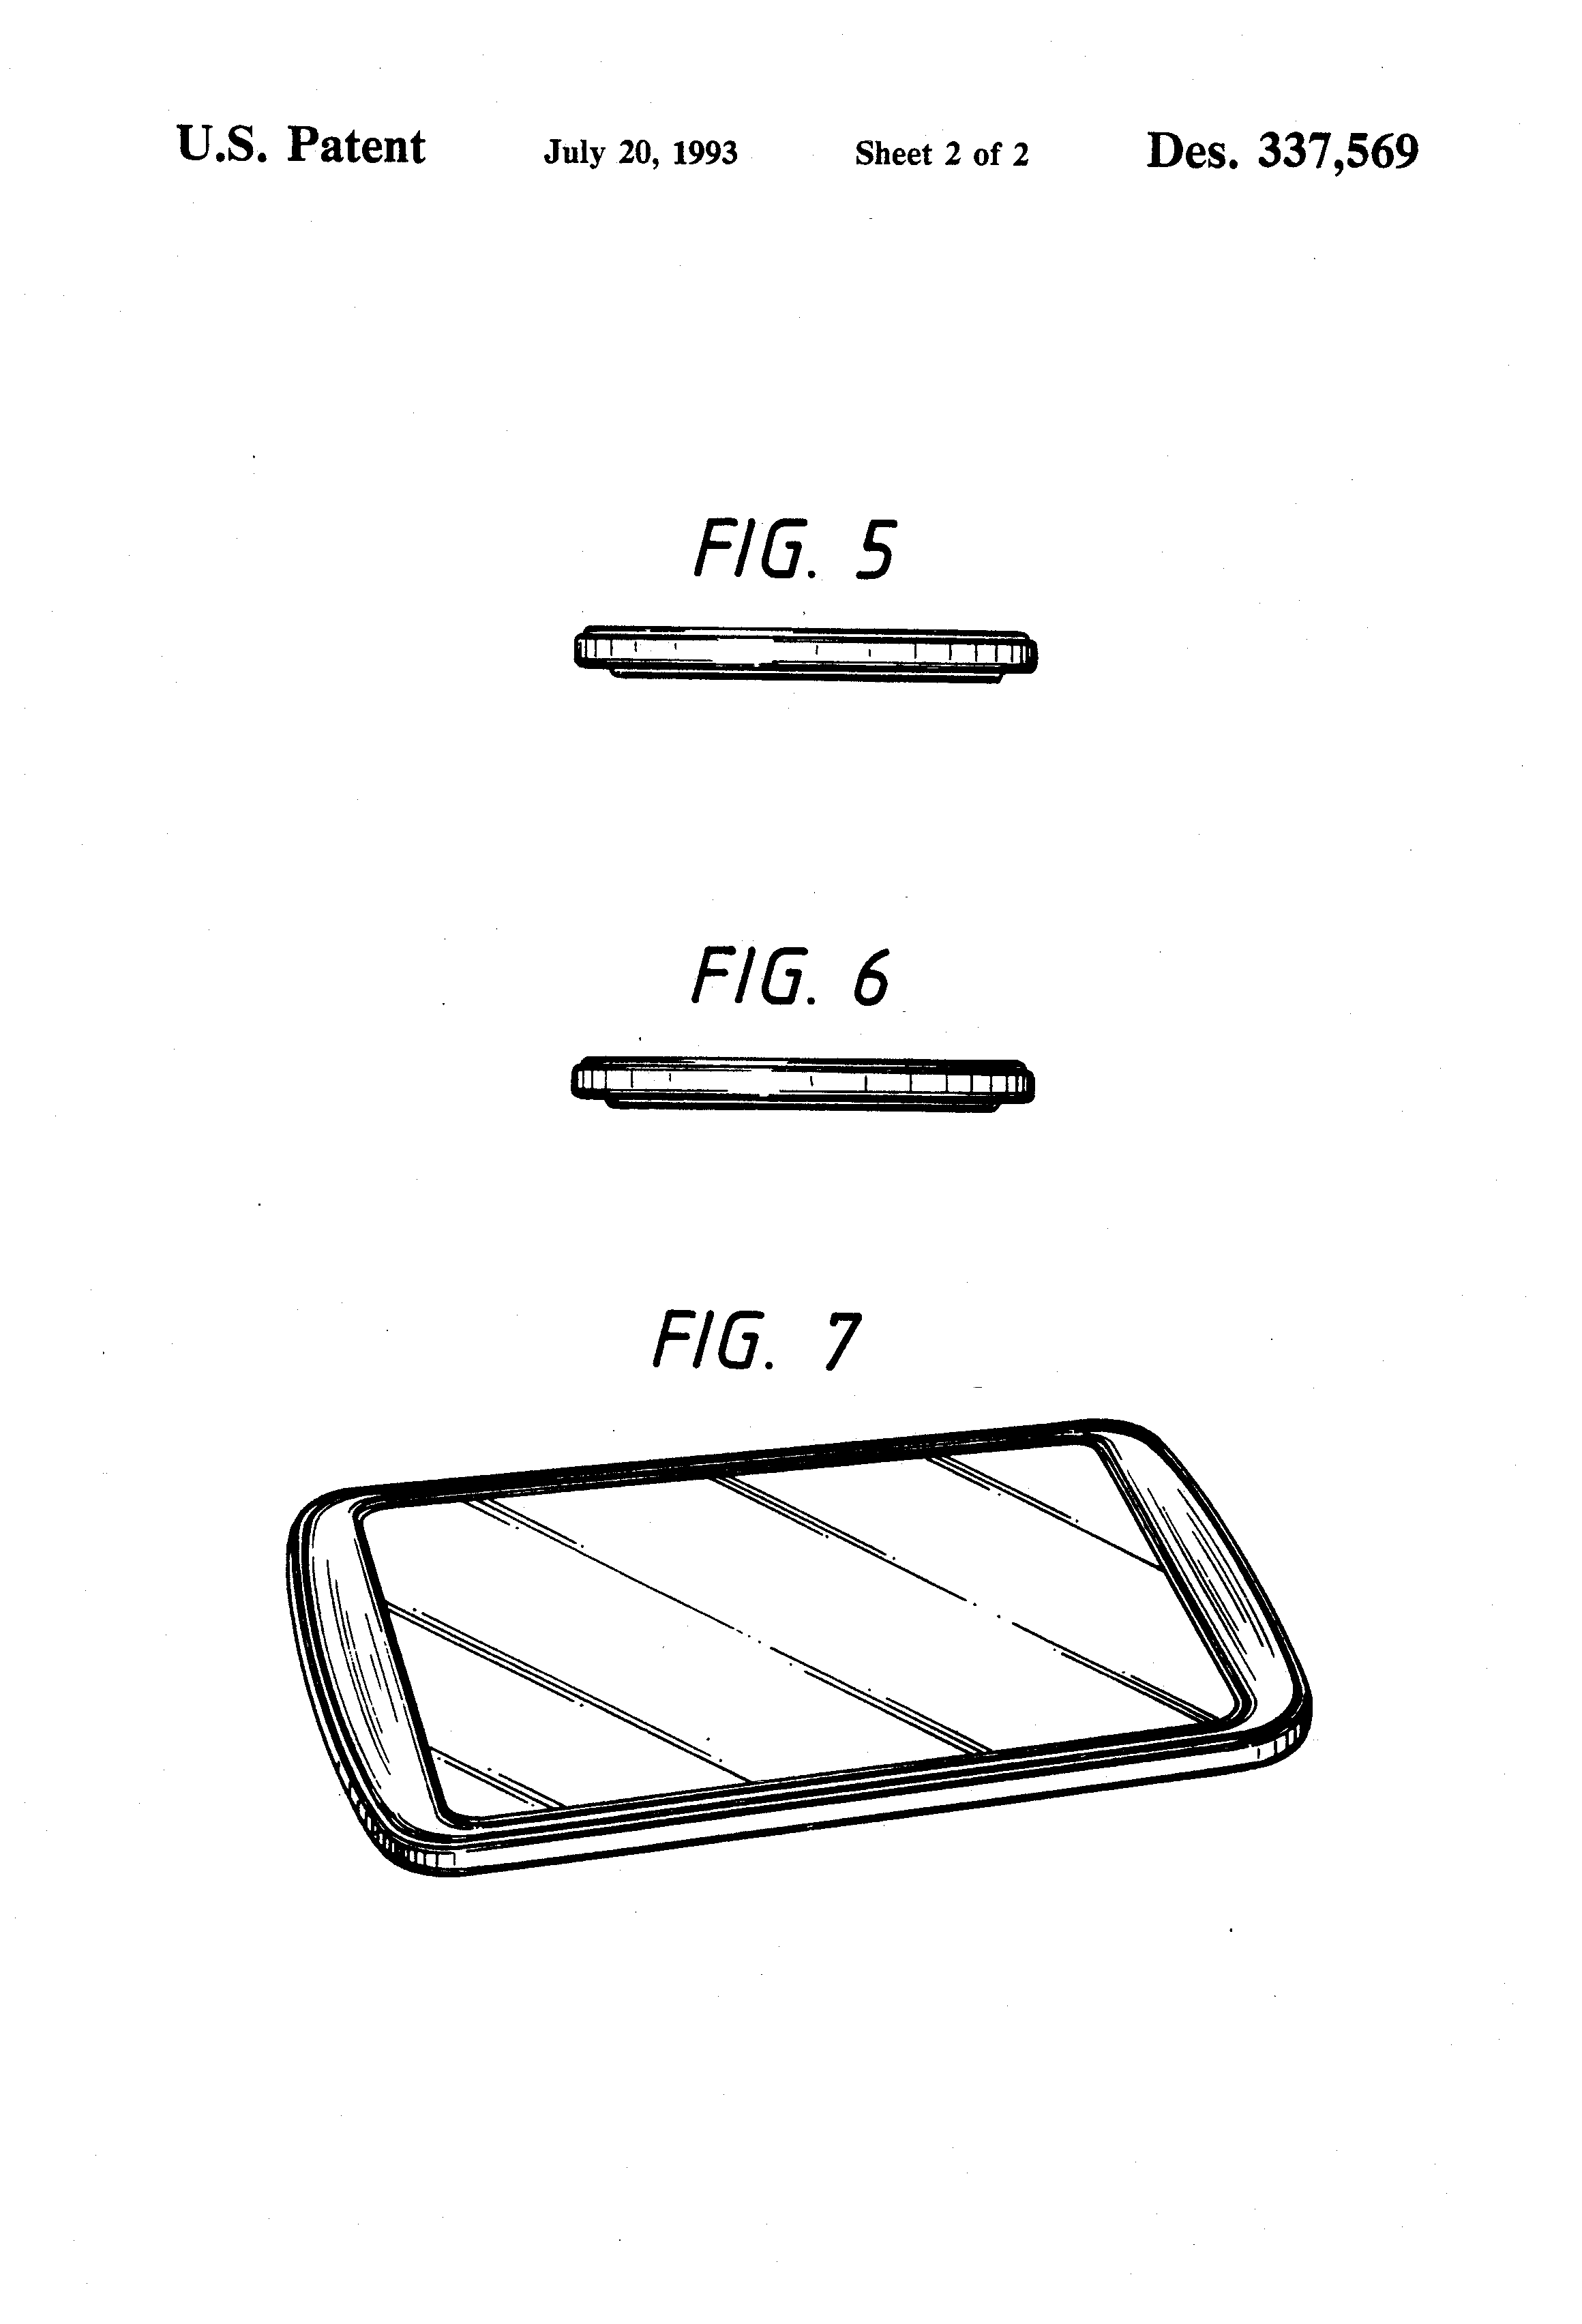 USD337569-2.png